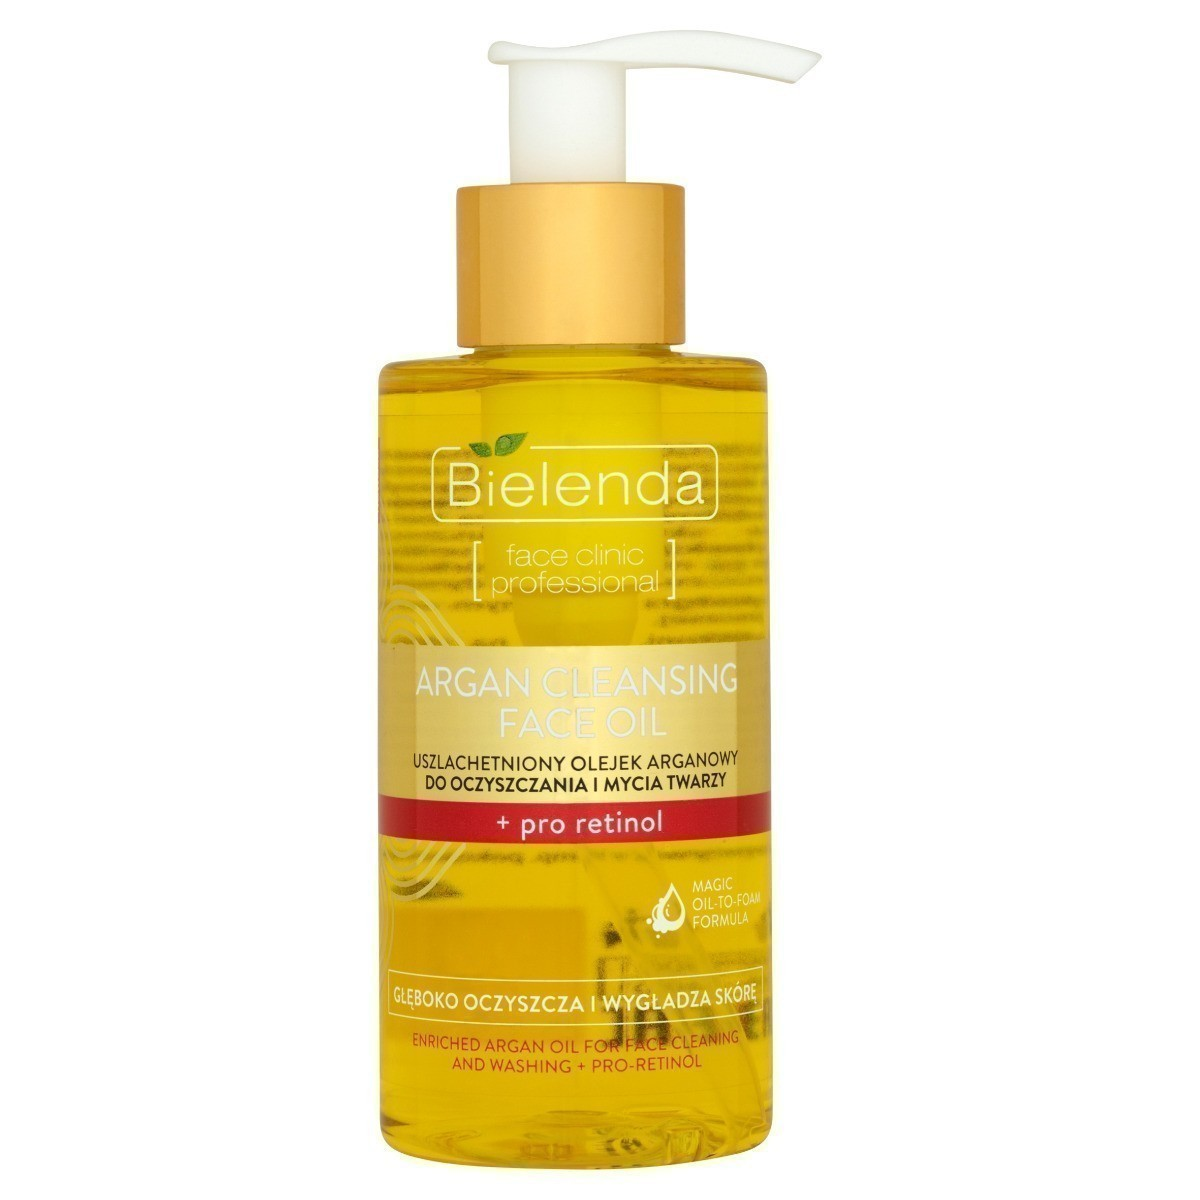 Bielenda Argan Cleansing Face Oil